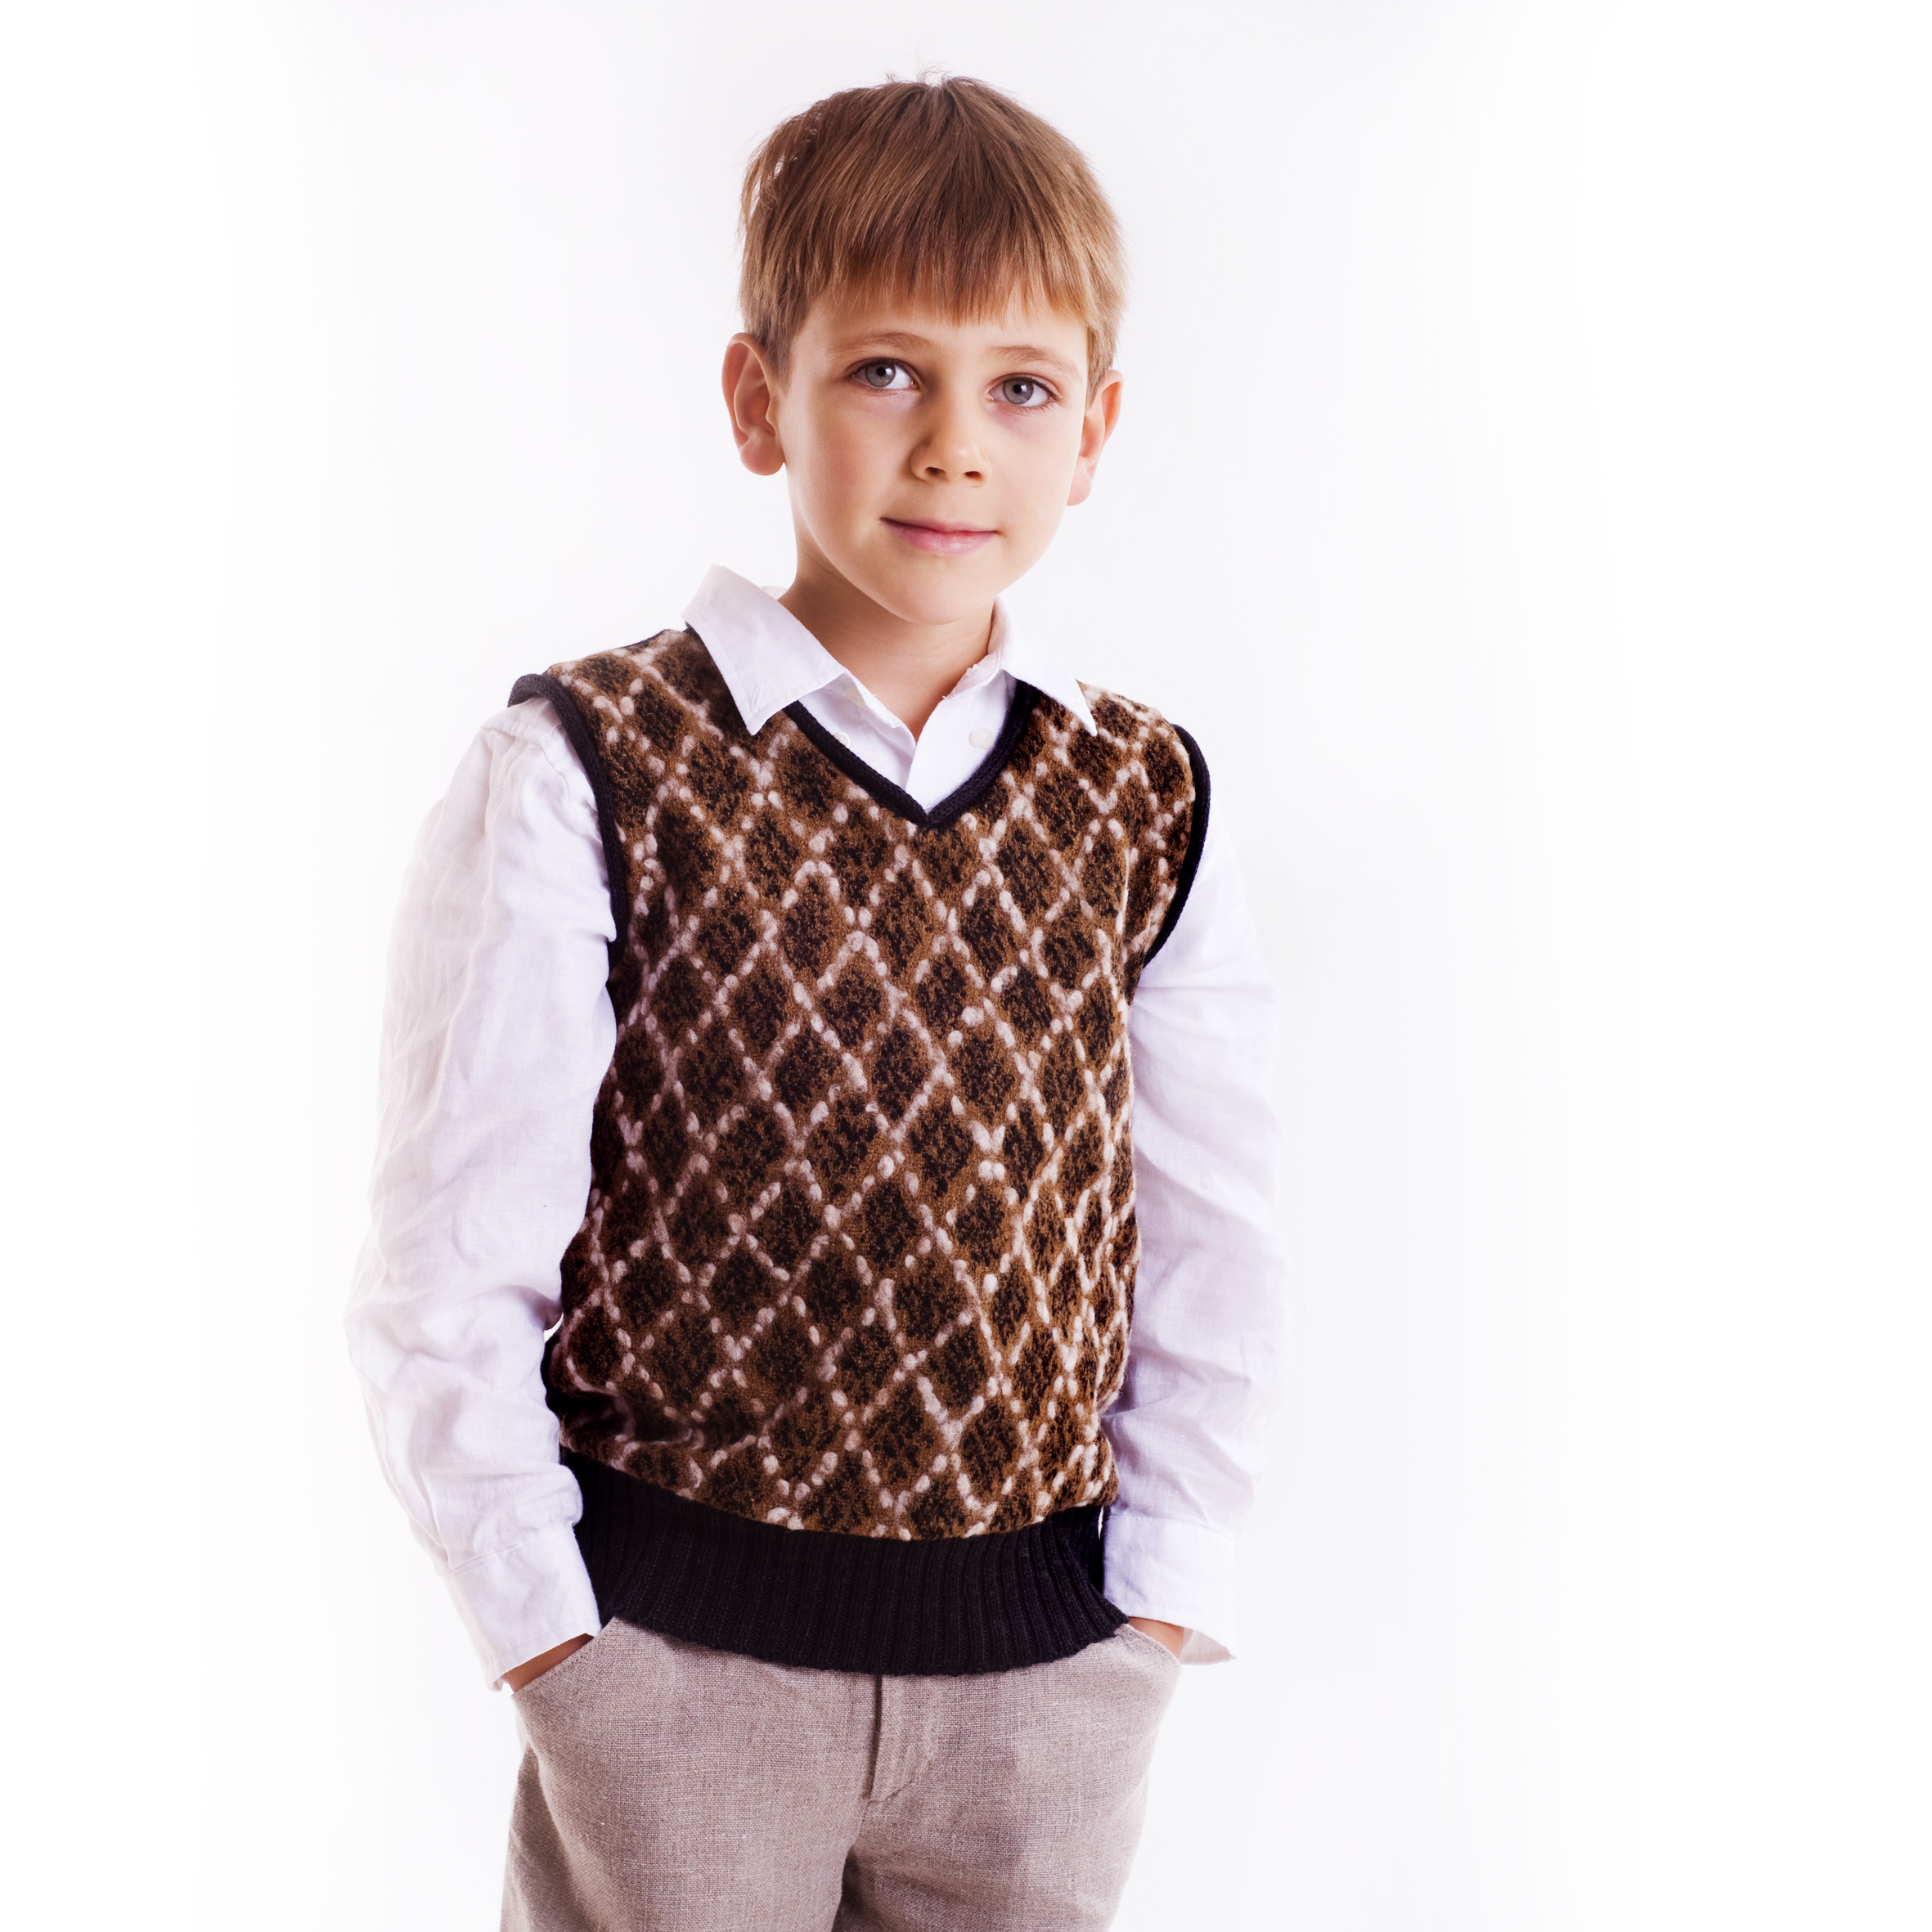 Boys' Sweaters. invalid category id. Boys' Sweaters. Showing 44 of 44 results that match your query. Search Product Result. Product - Boys' Pill-Resistant Performance Fleece Full Zip Hoodie. Genuine Uniform Boys Sweater Vest. Product - Boys Uniform Cardigan Sweater. Product Image. .